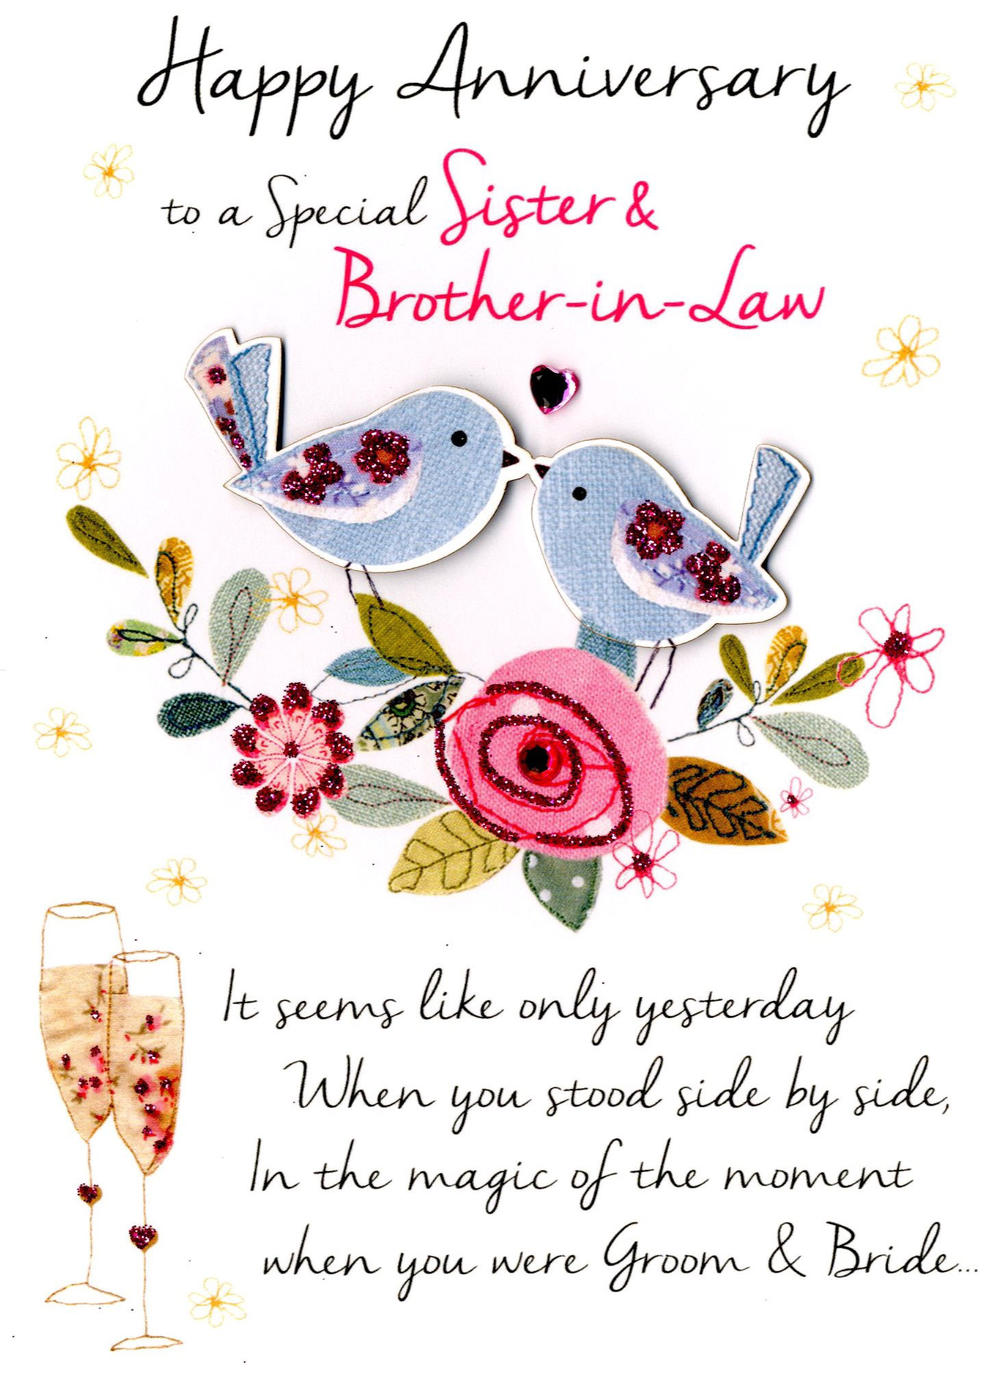 Sister brother in law anniversary greeting card cards love kates